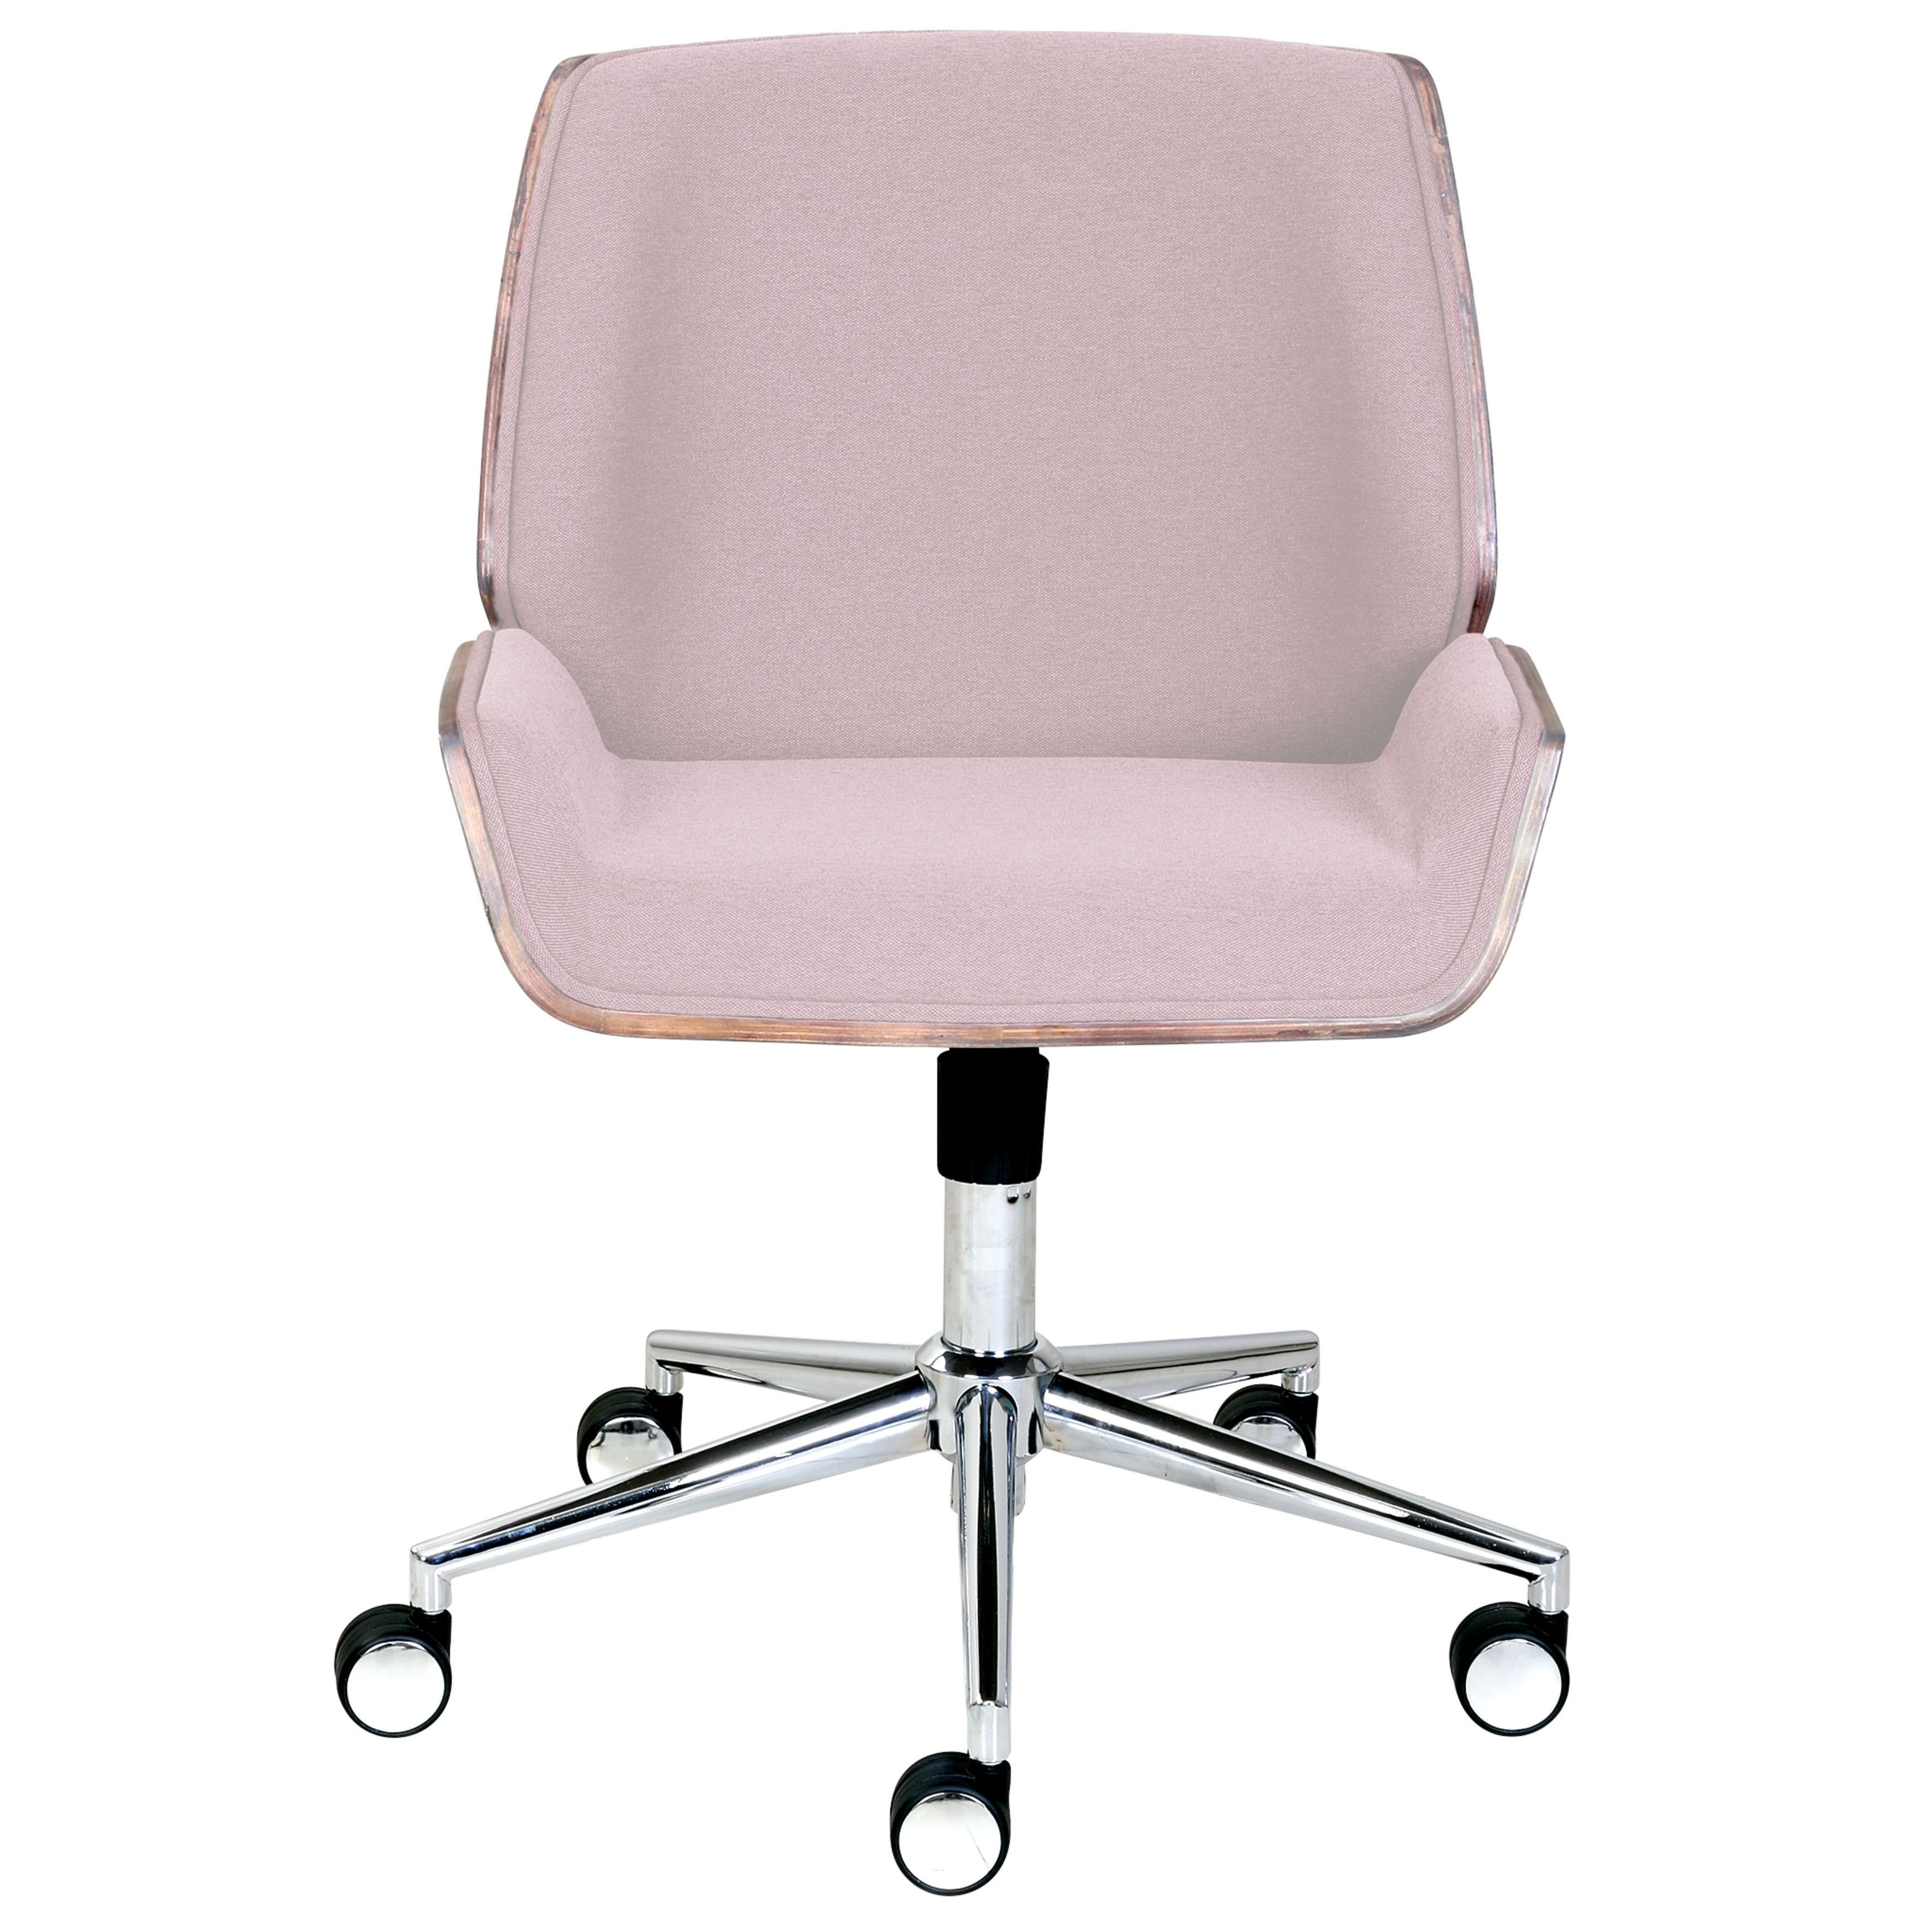 Sensational Elle Decor Ophelia Bentwood Metal Fabric Task Chair Pink Ibusinesslaw Wood Chair Design Ideas Ibusinesslaworg